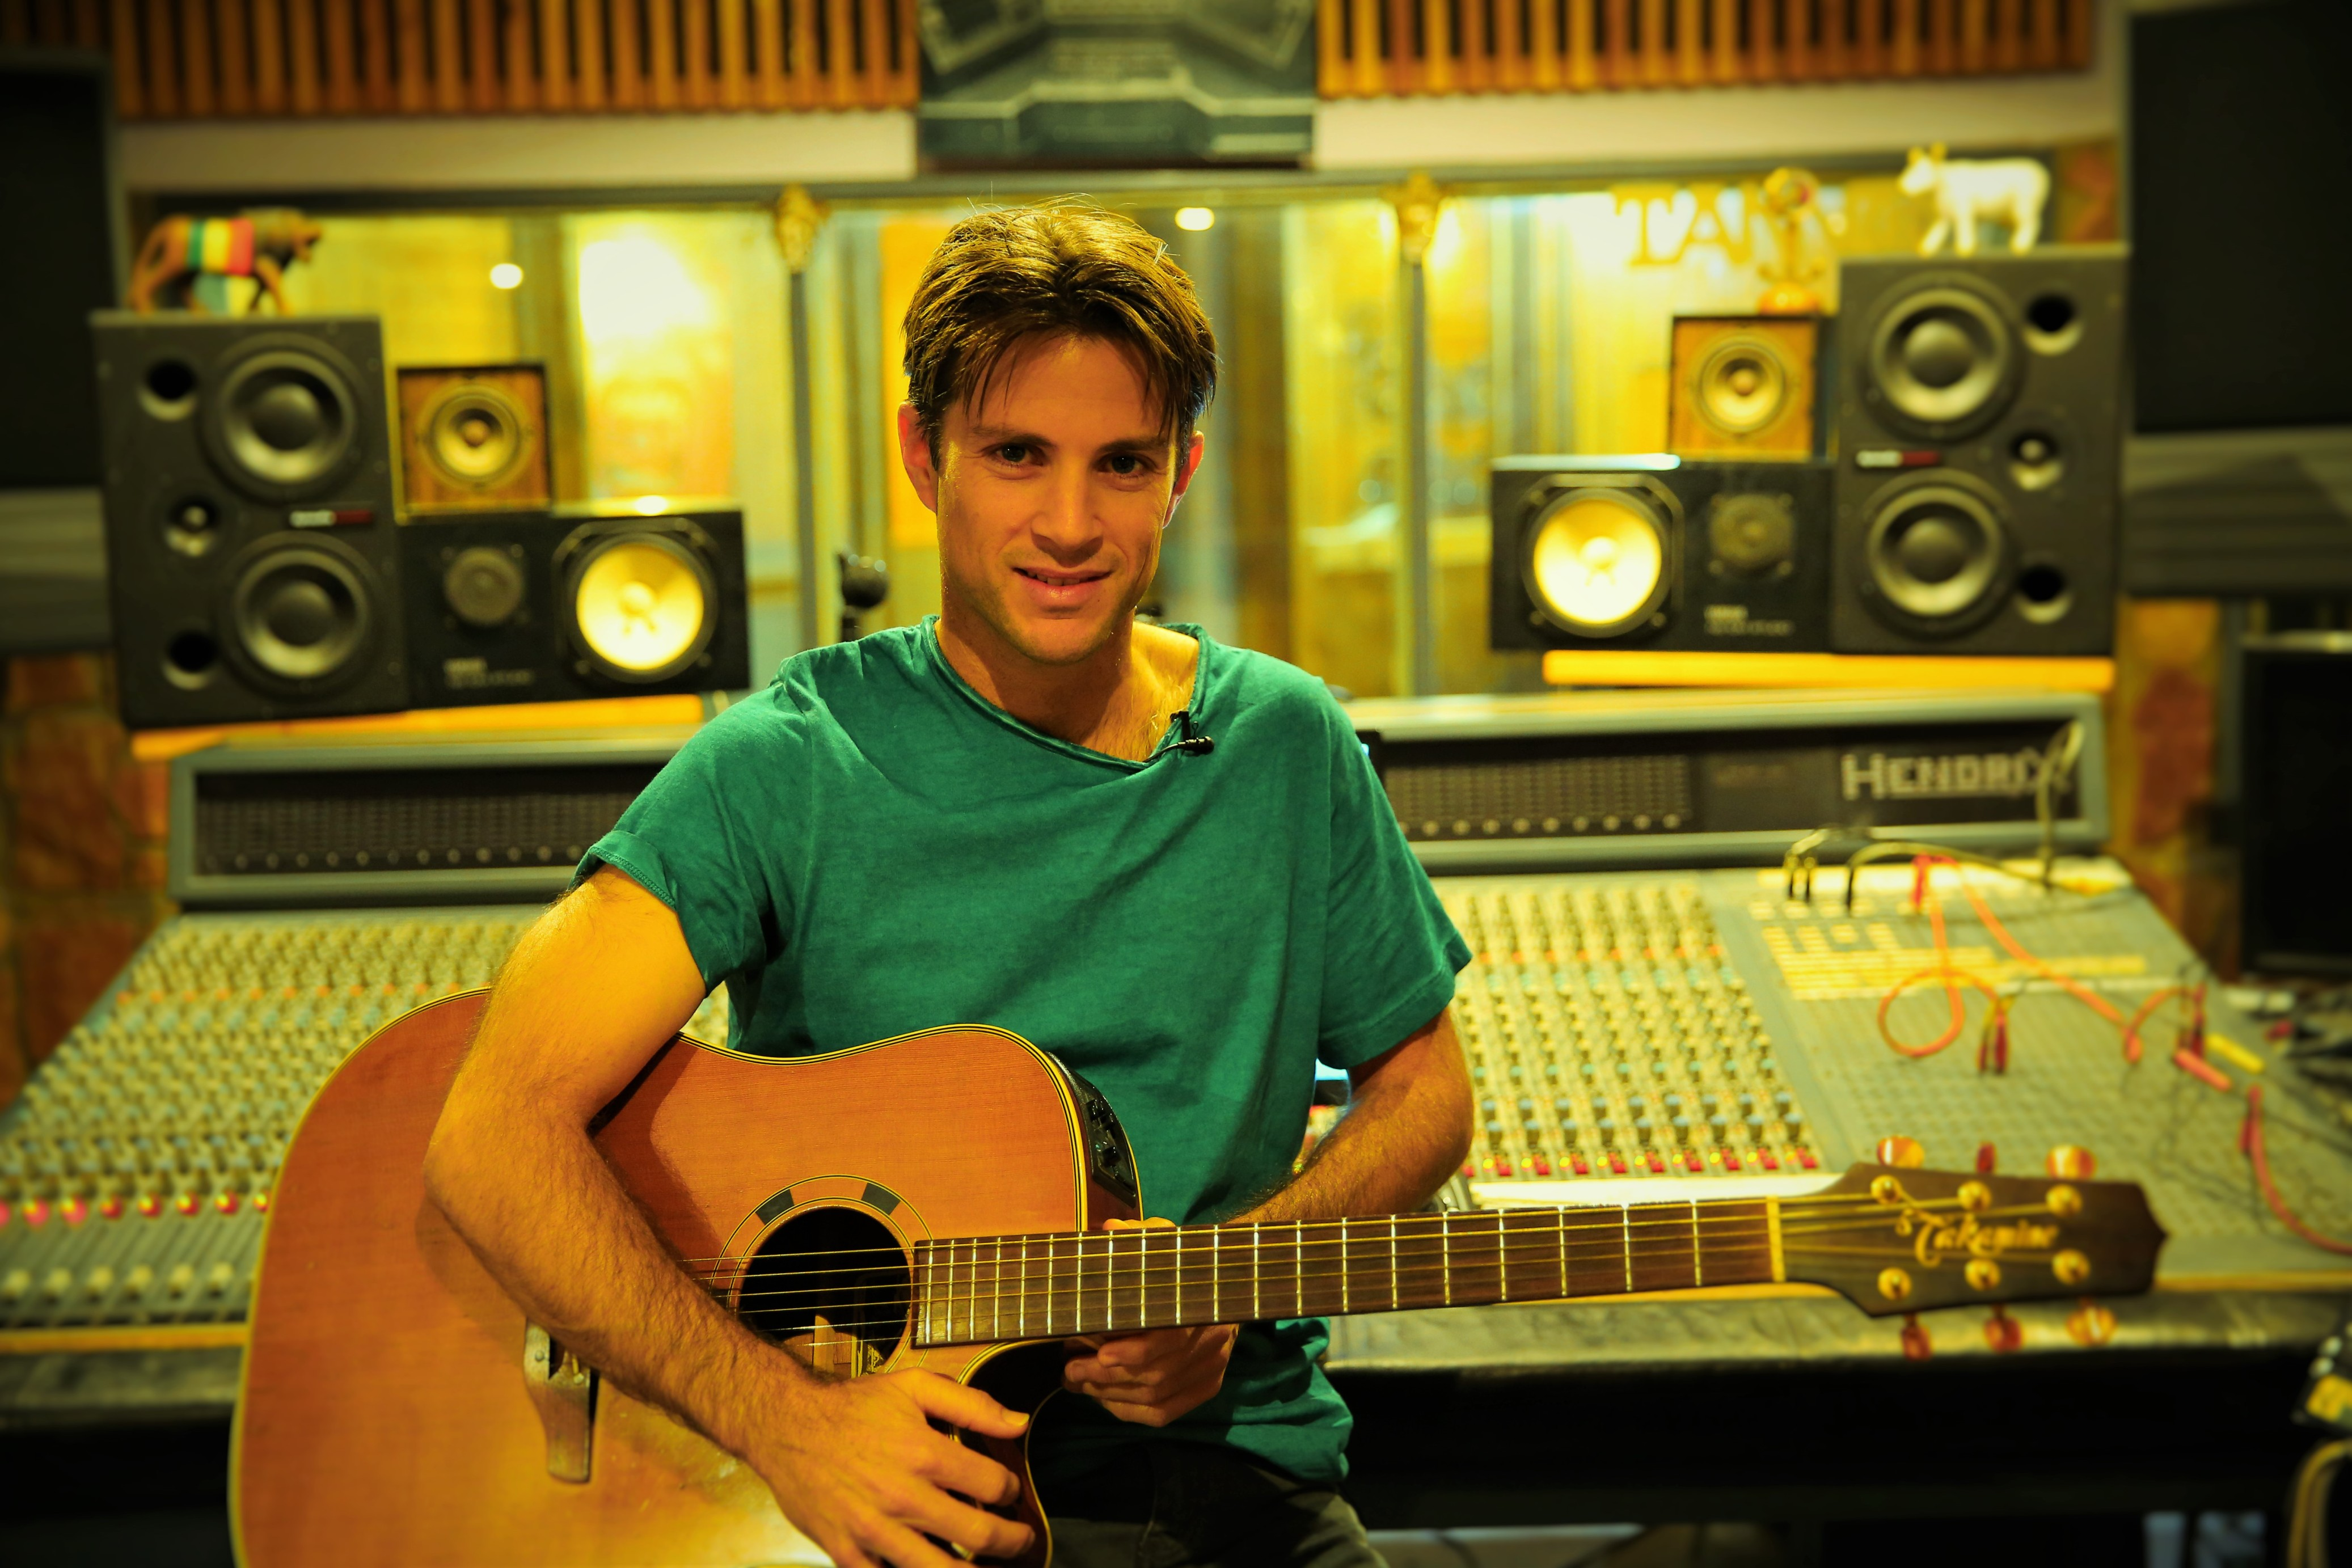 record professional acoustic or electric guitar for you